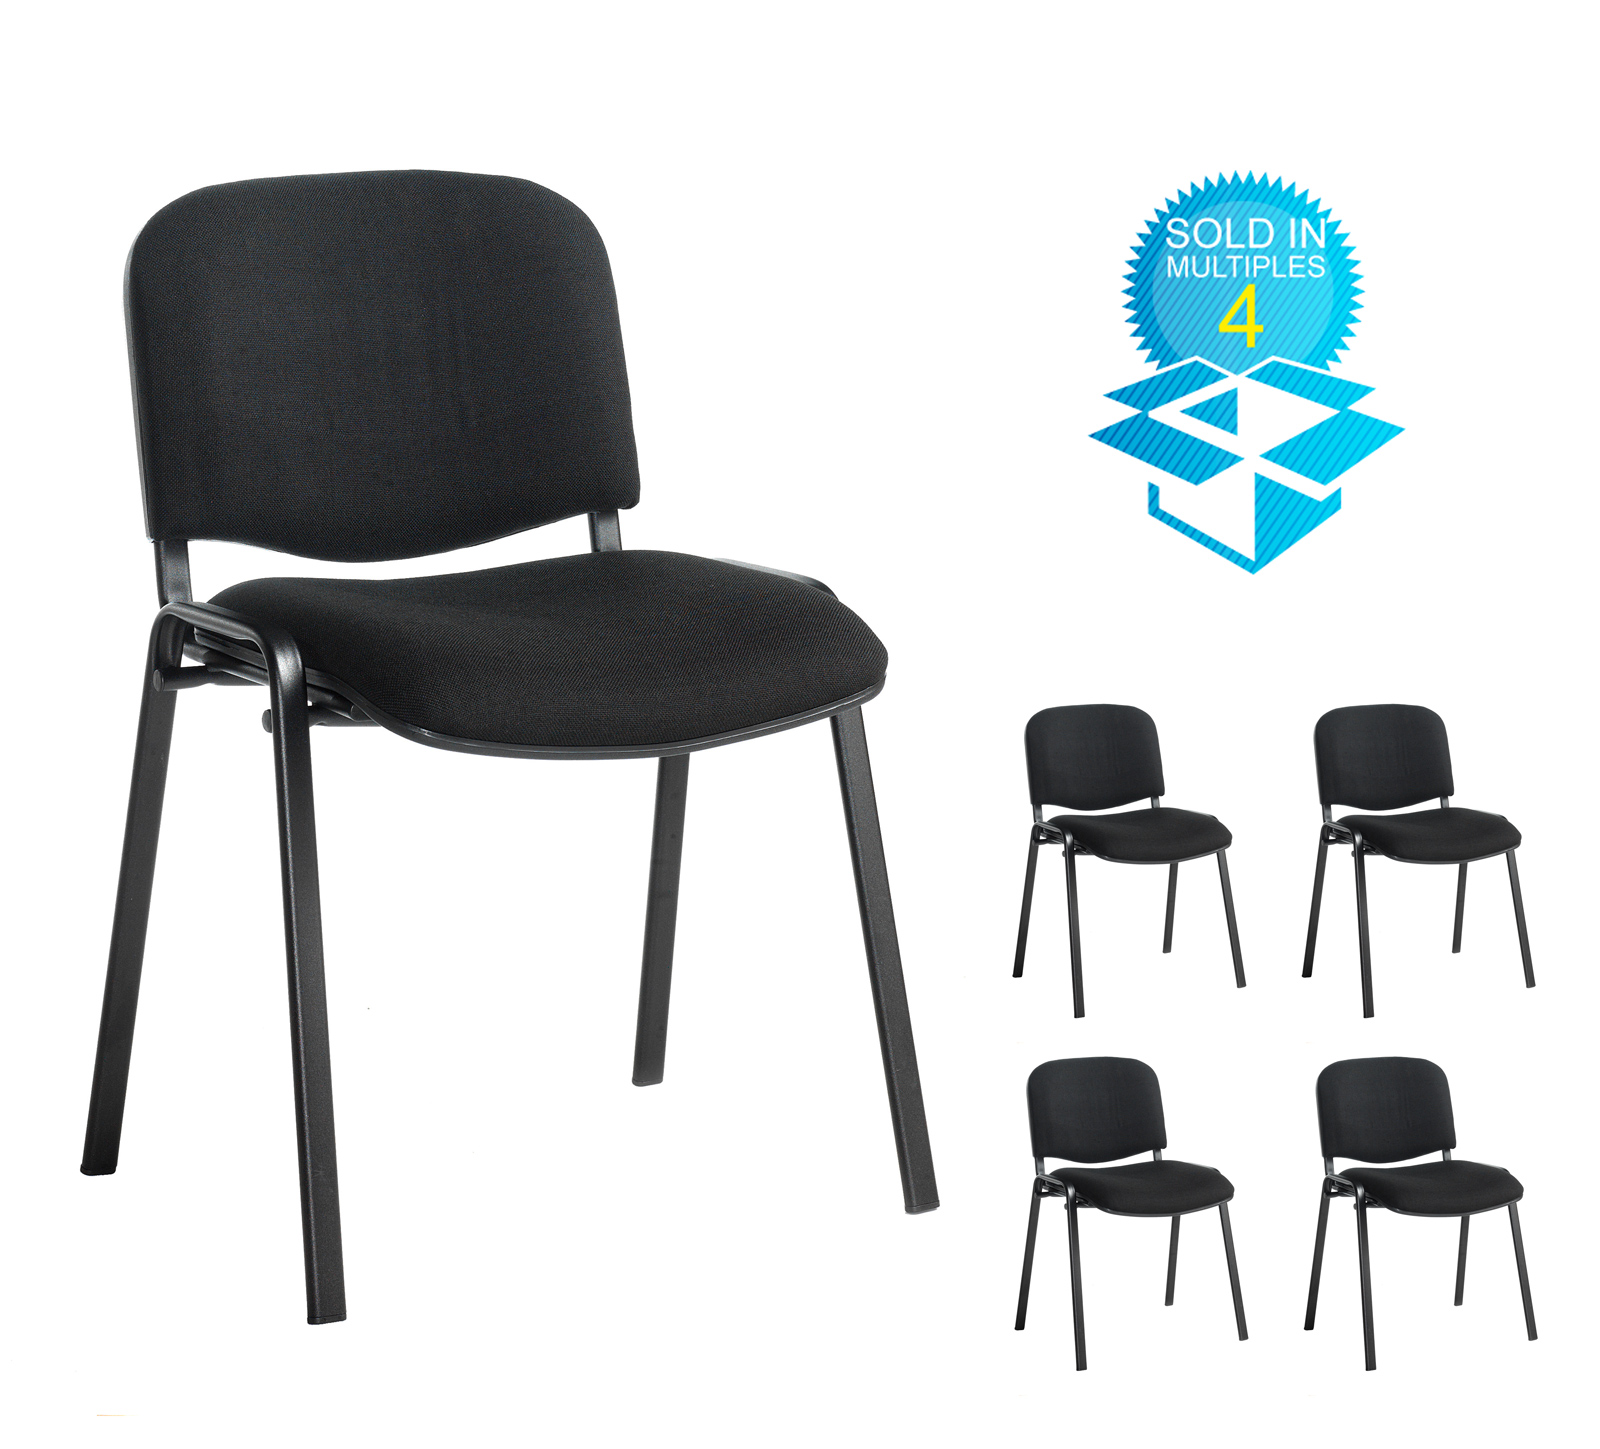 Taurus meeting room stackable chair (box of 4) with black frame and ...